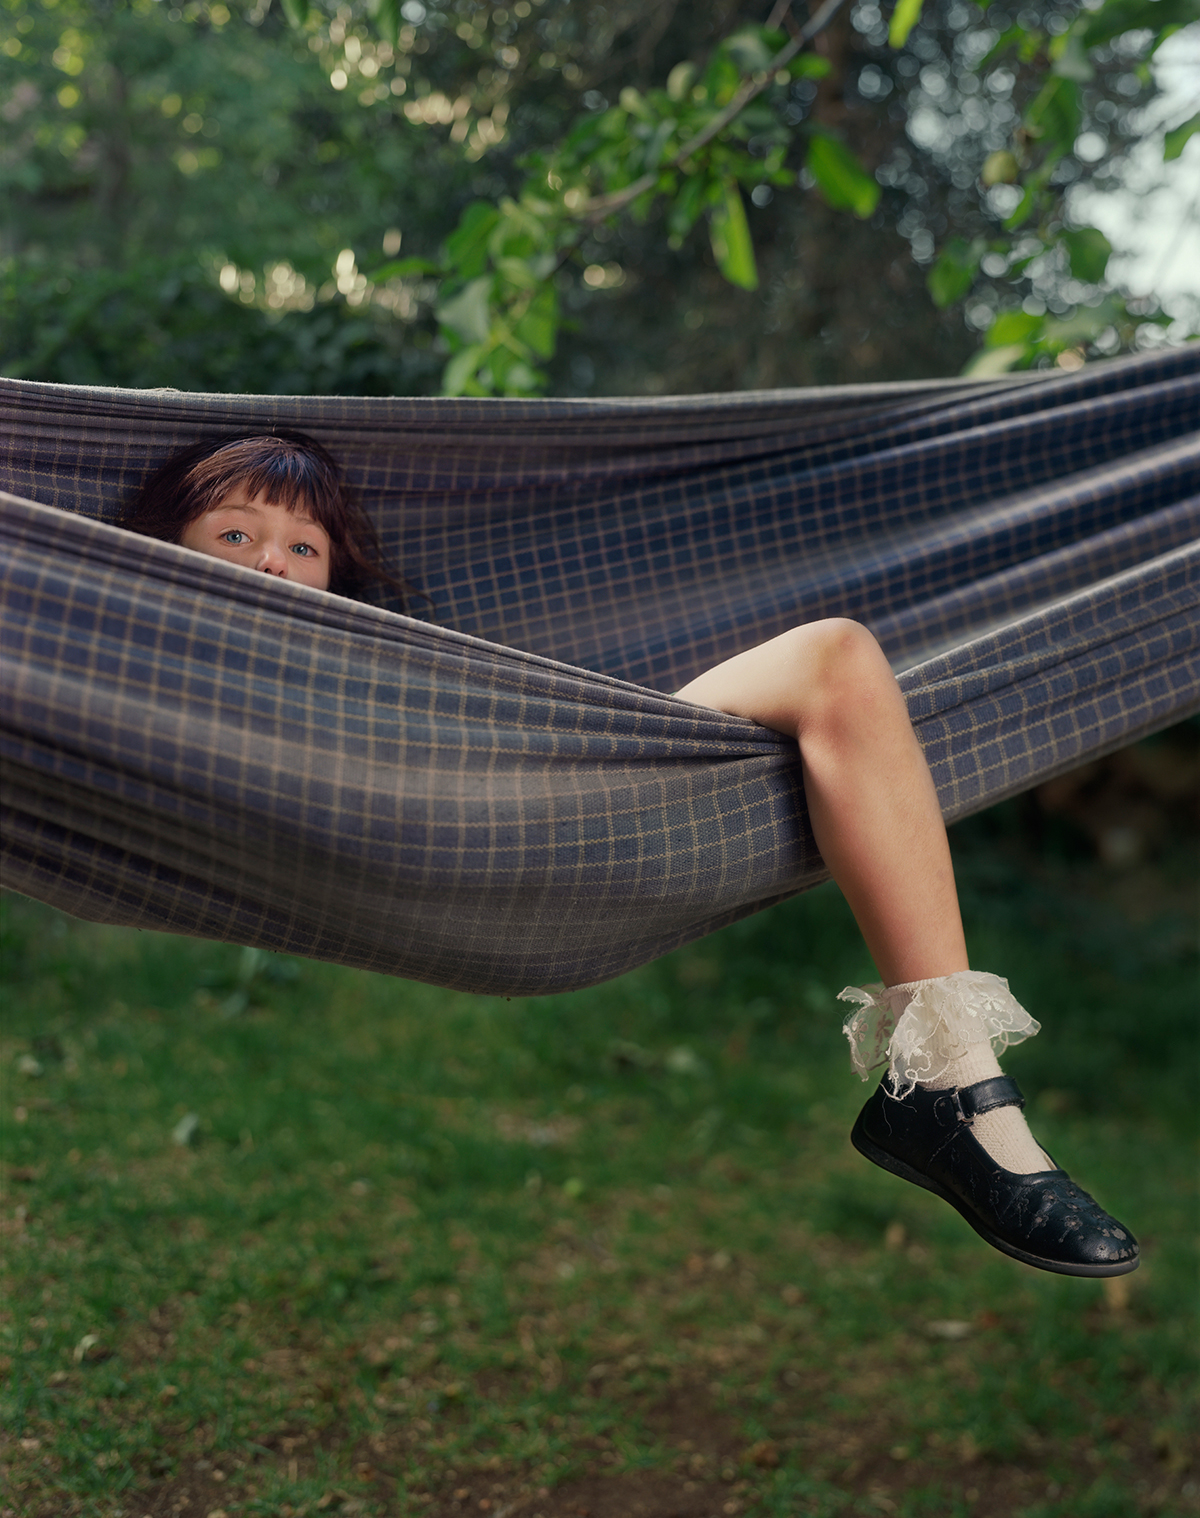 Girl in Hammock, 2008